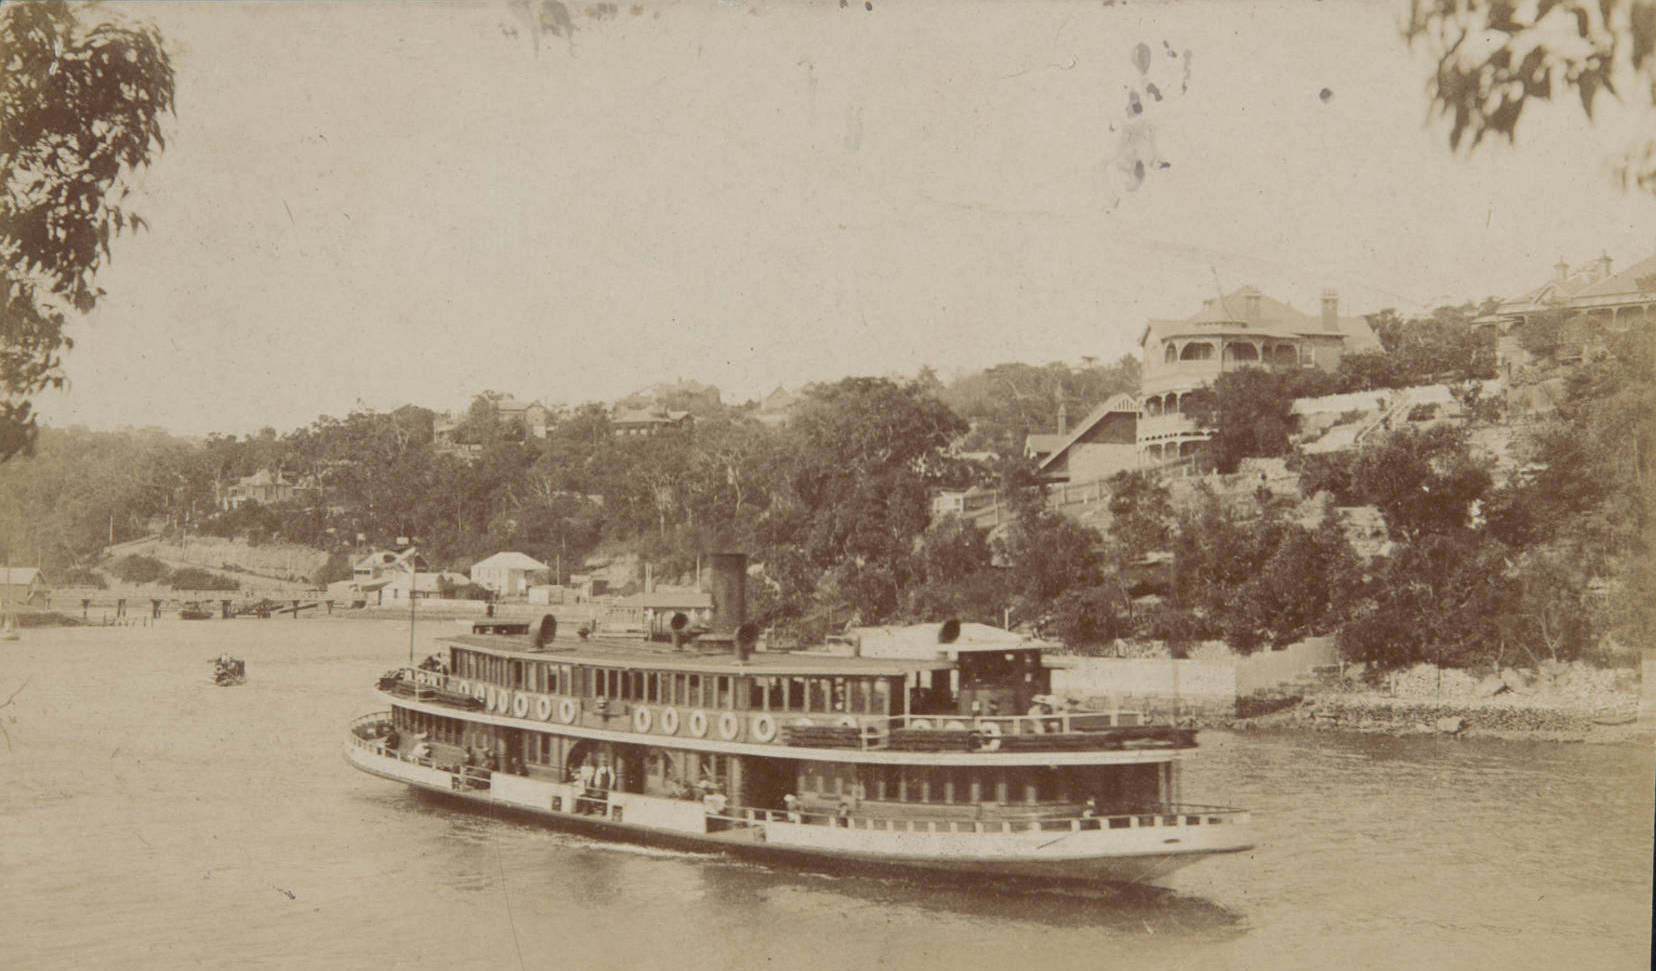 """Sarah Boyd and Jean Olliver travelled to Mosman on a steam ferry, before dumping the """"baby in the suitcase"""" on the return journey to Circular Quay."""